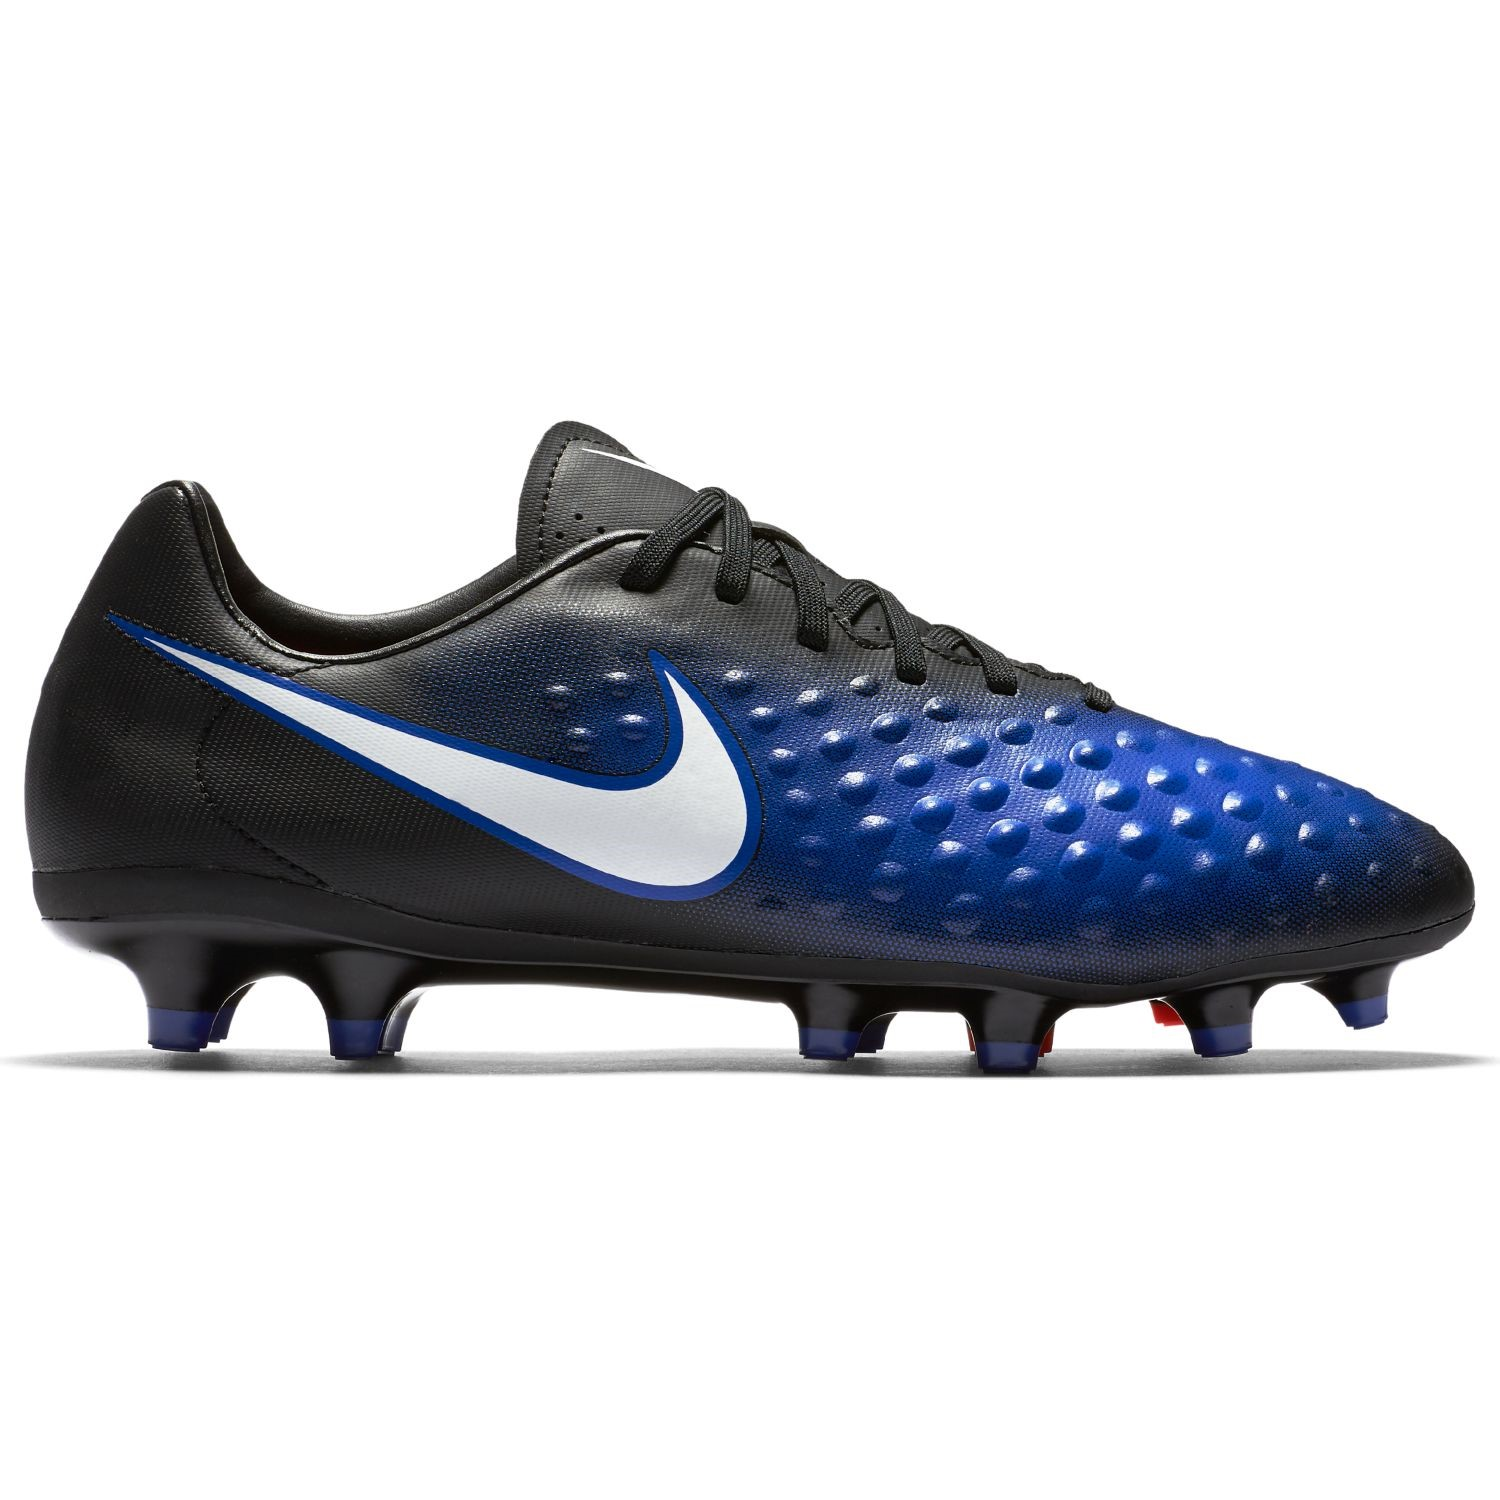 2cb04d7bbba9 Nike Magista Onda II FG - Mens Football Boots - Black White Paramount Blue